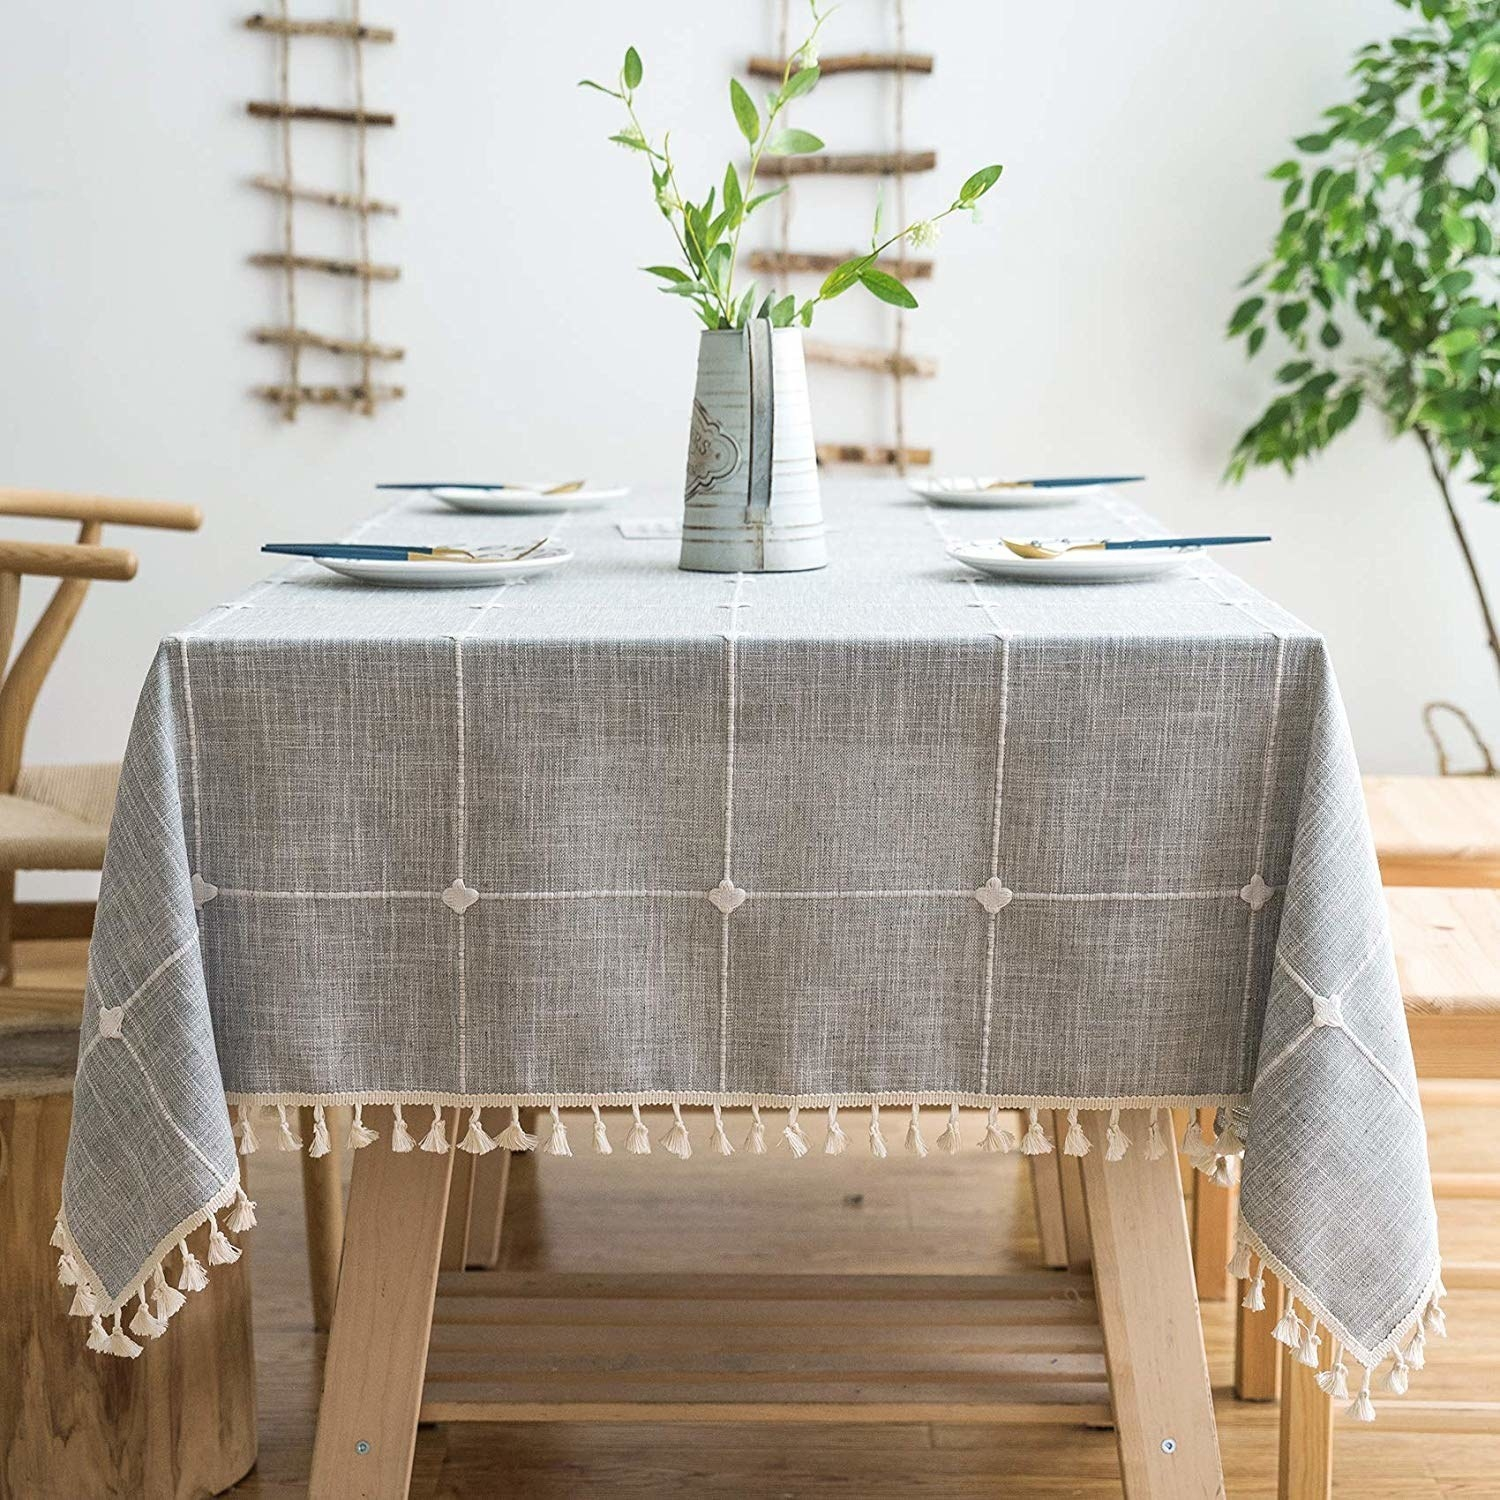 Gray tablecloth with grid pattern and tassels